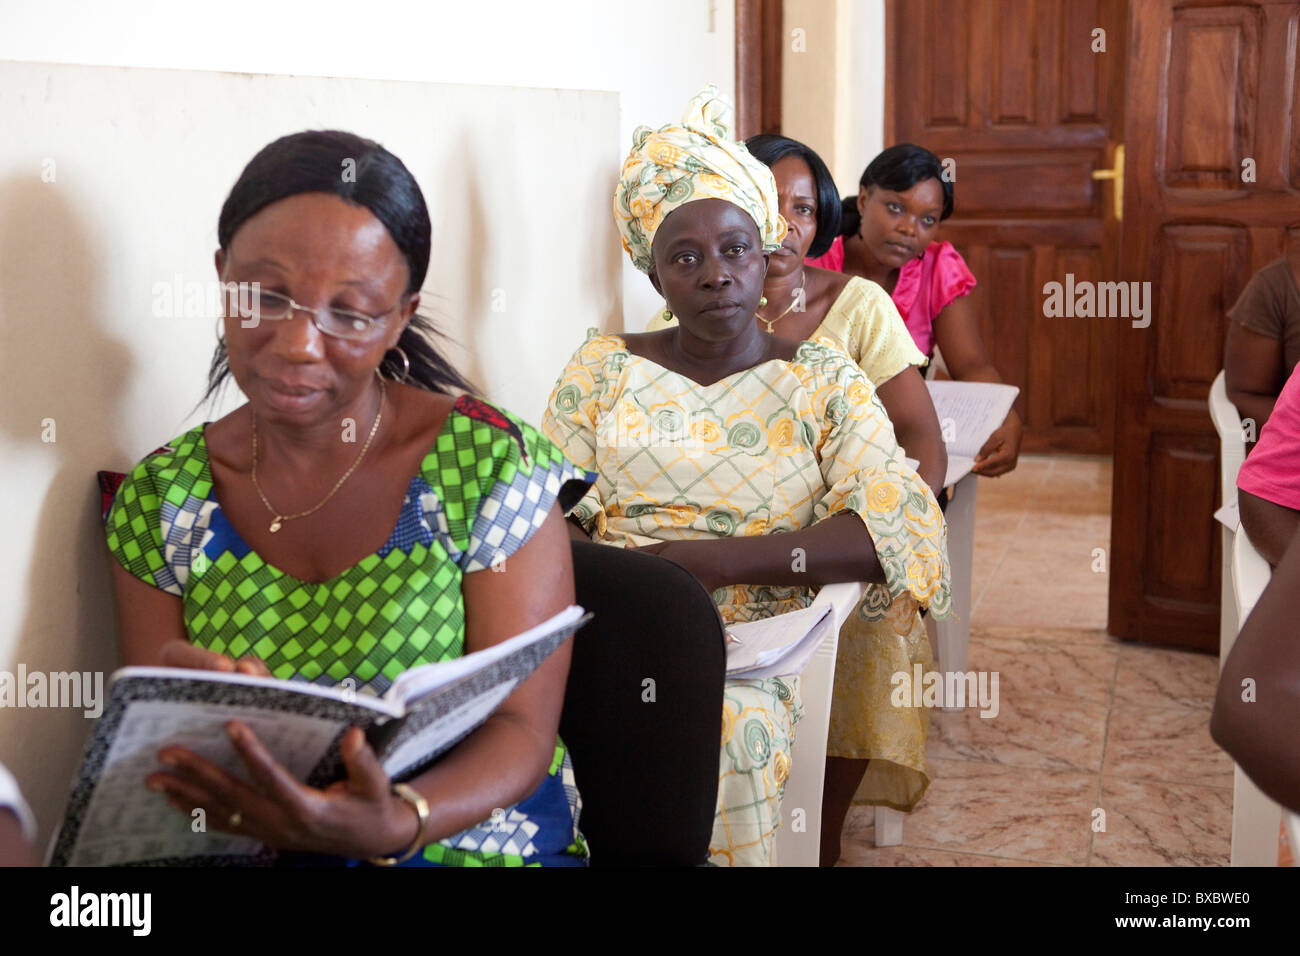 Community Health Volunteers attend a training in Monrovia, Liberia, West Africa. - Stock Image